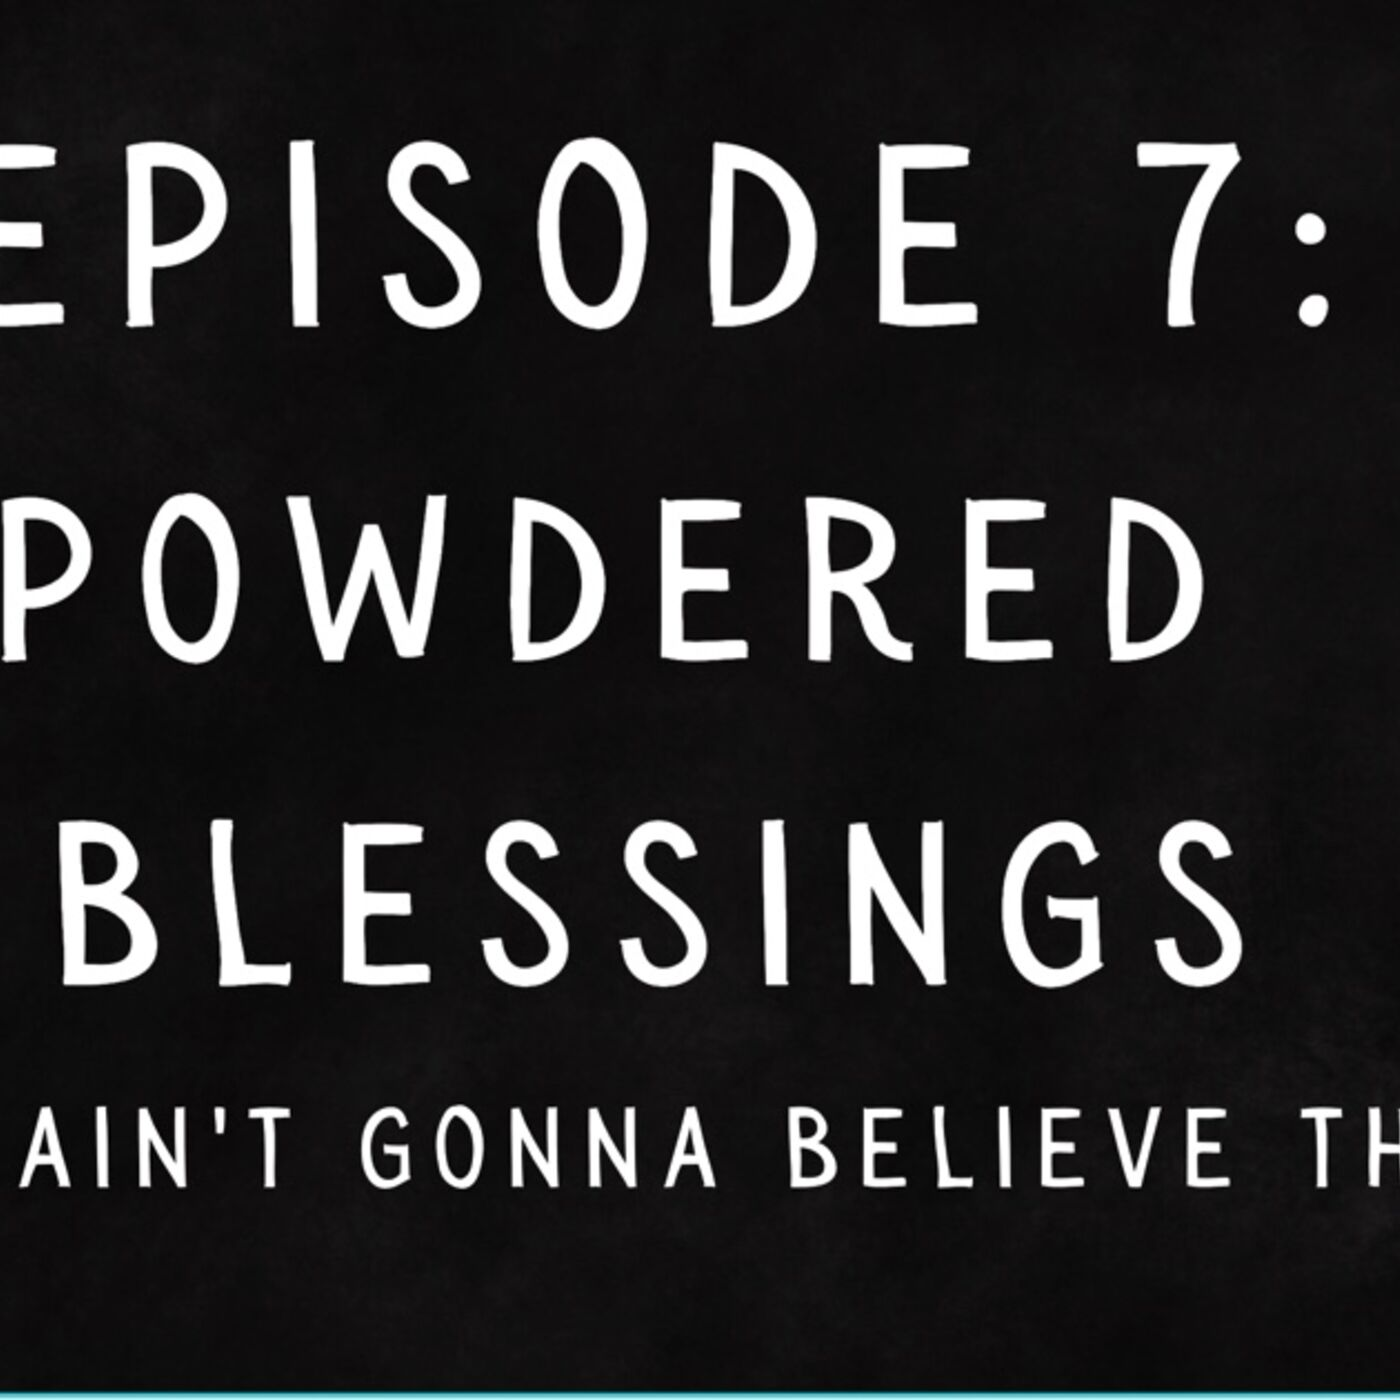 Episode 7: Powdered Blessings